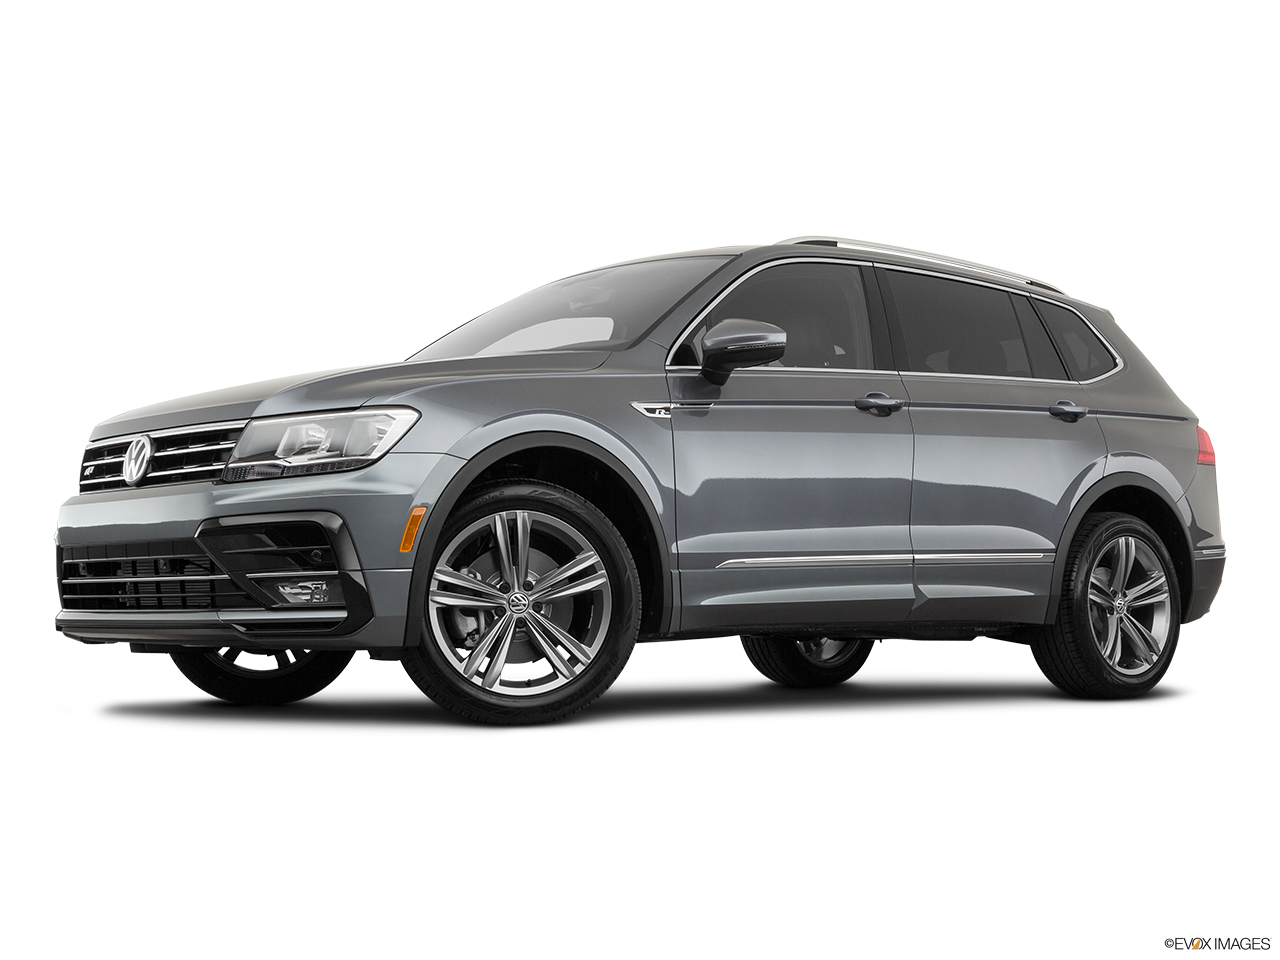 2019 Volkswagen Tiguan photo